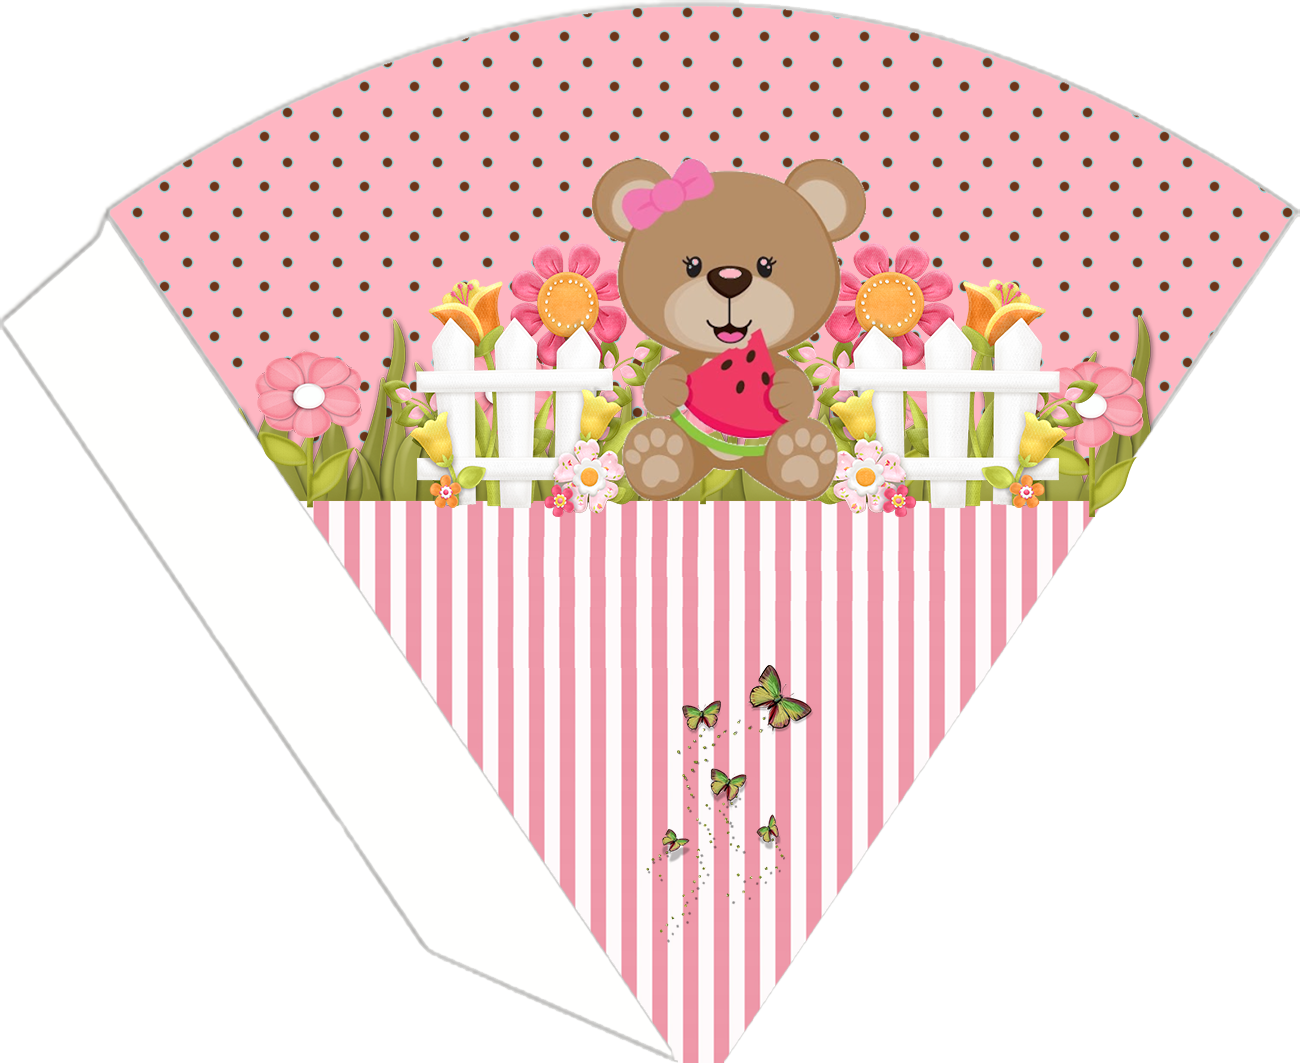 Girly Bear Eating Watermelon Free Printable Cones.